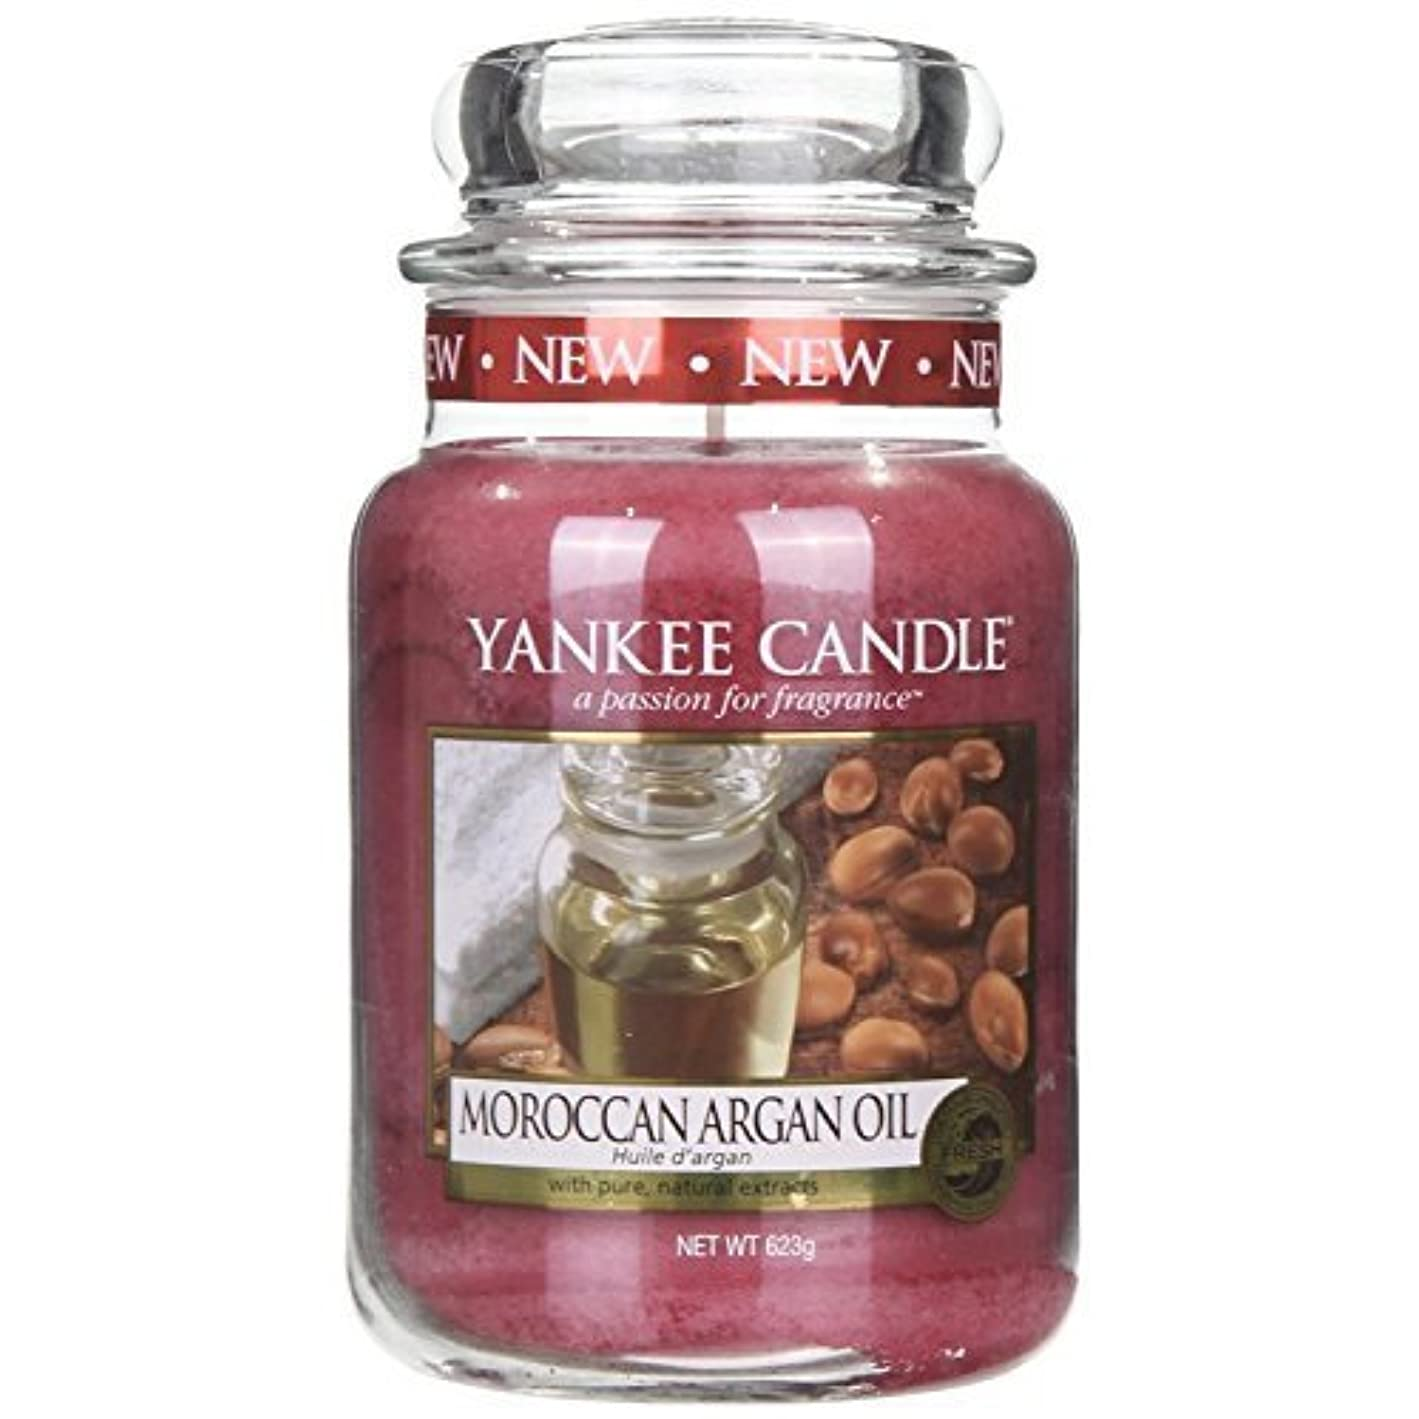 静けさ特権的ドナーYankee Candle MOROCCAN ARGAN OIL 22oz Large Jar Candle - UK Exclusive by Yankee Candle [並行輸入品]